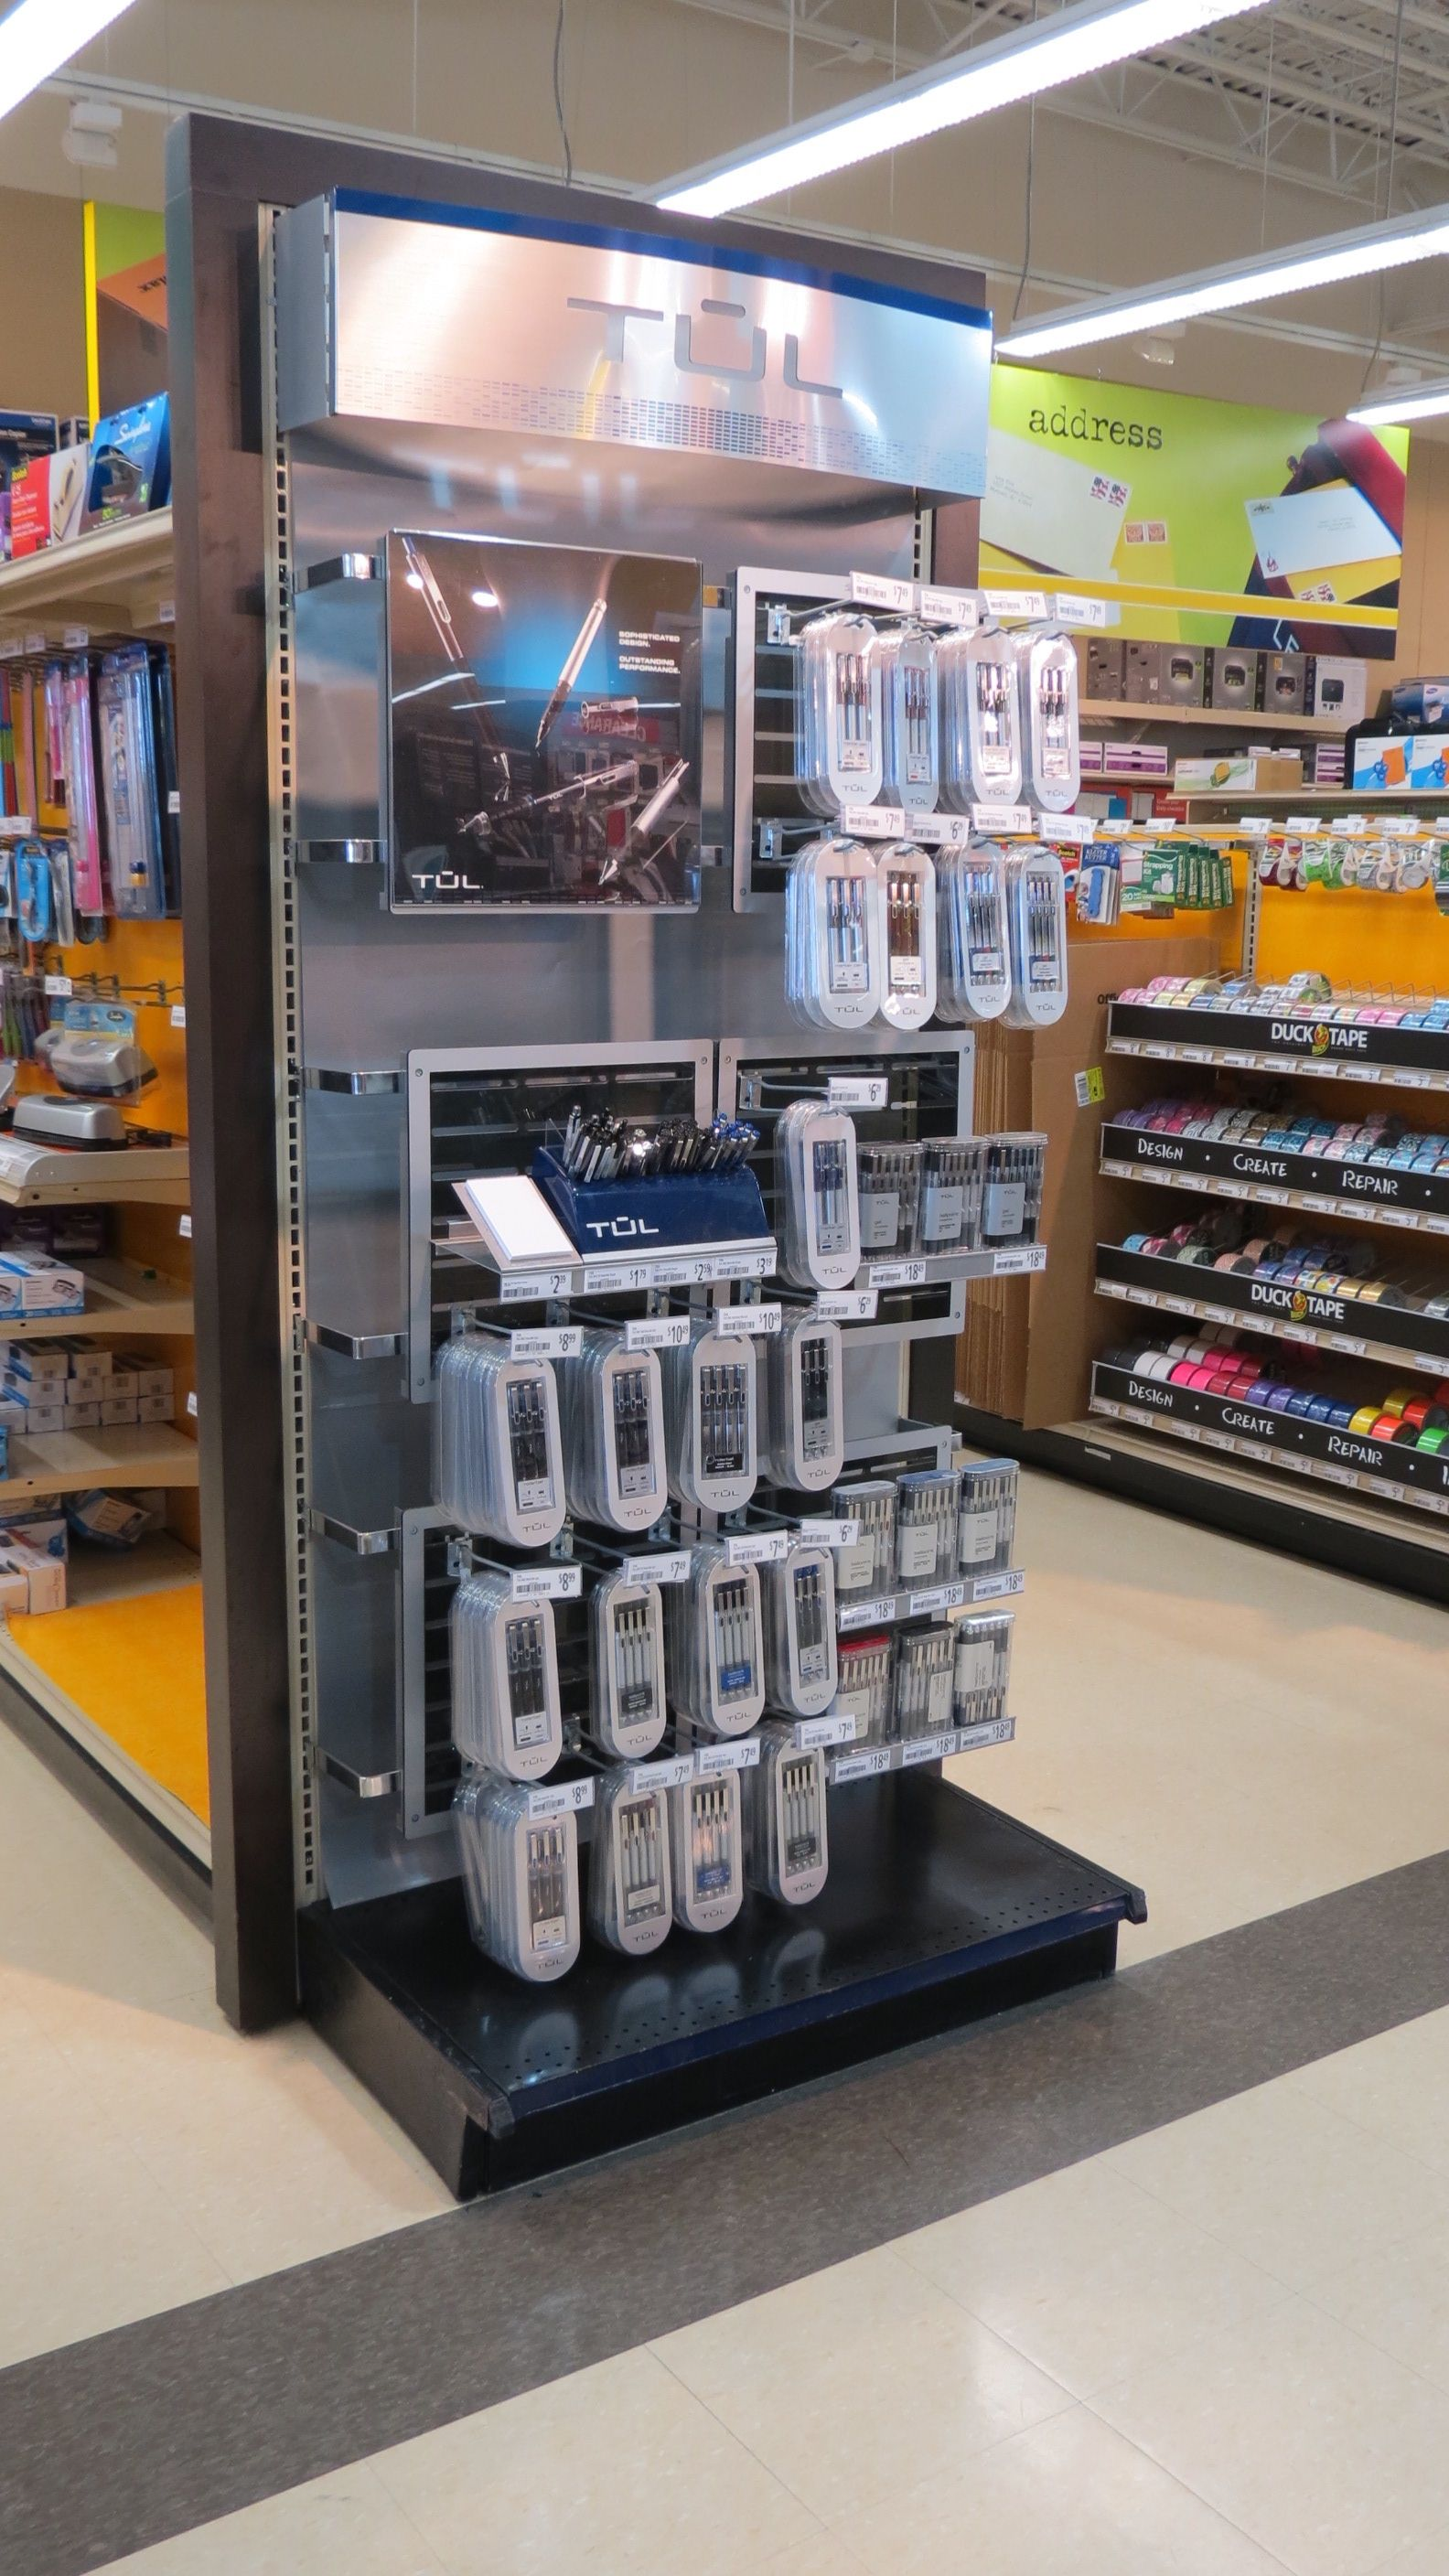 Tul Pen Office Products Promo Endcap Display Retail